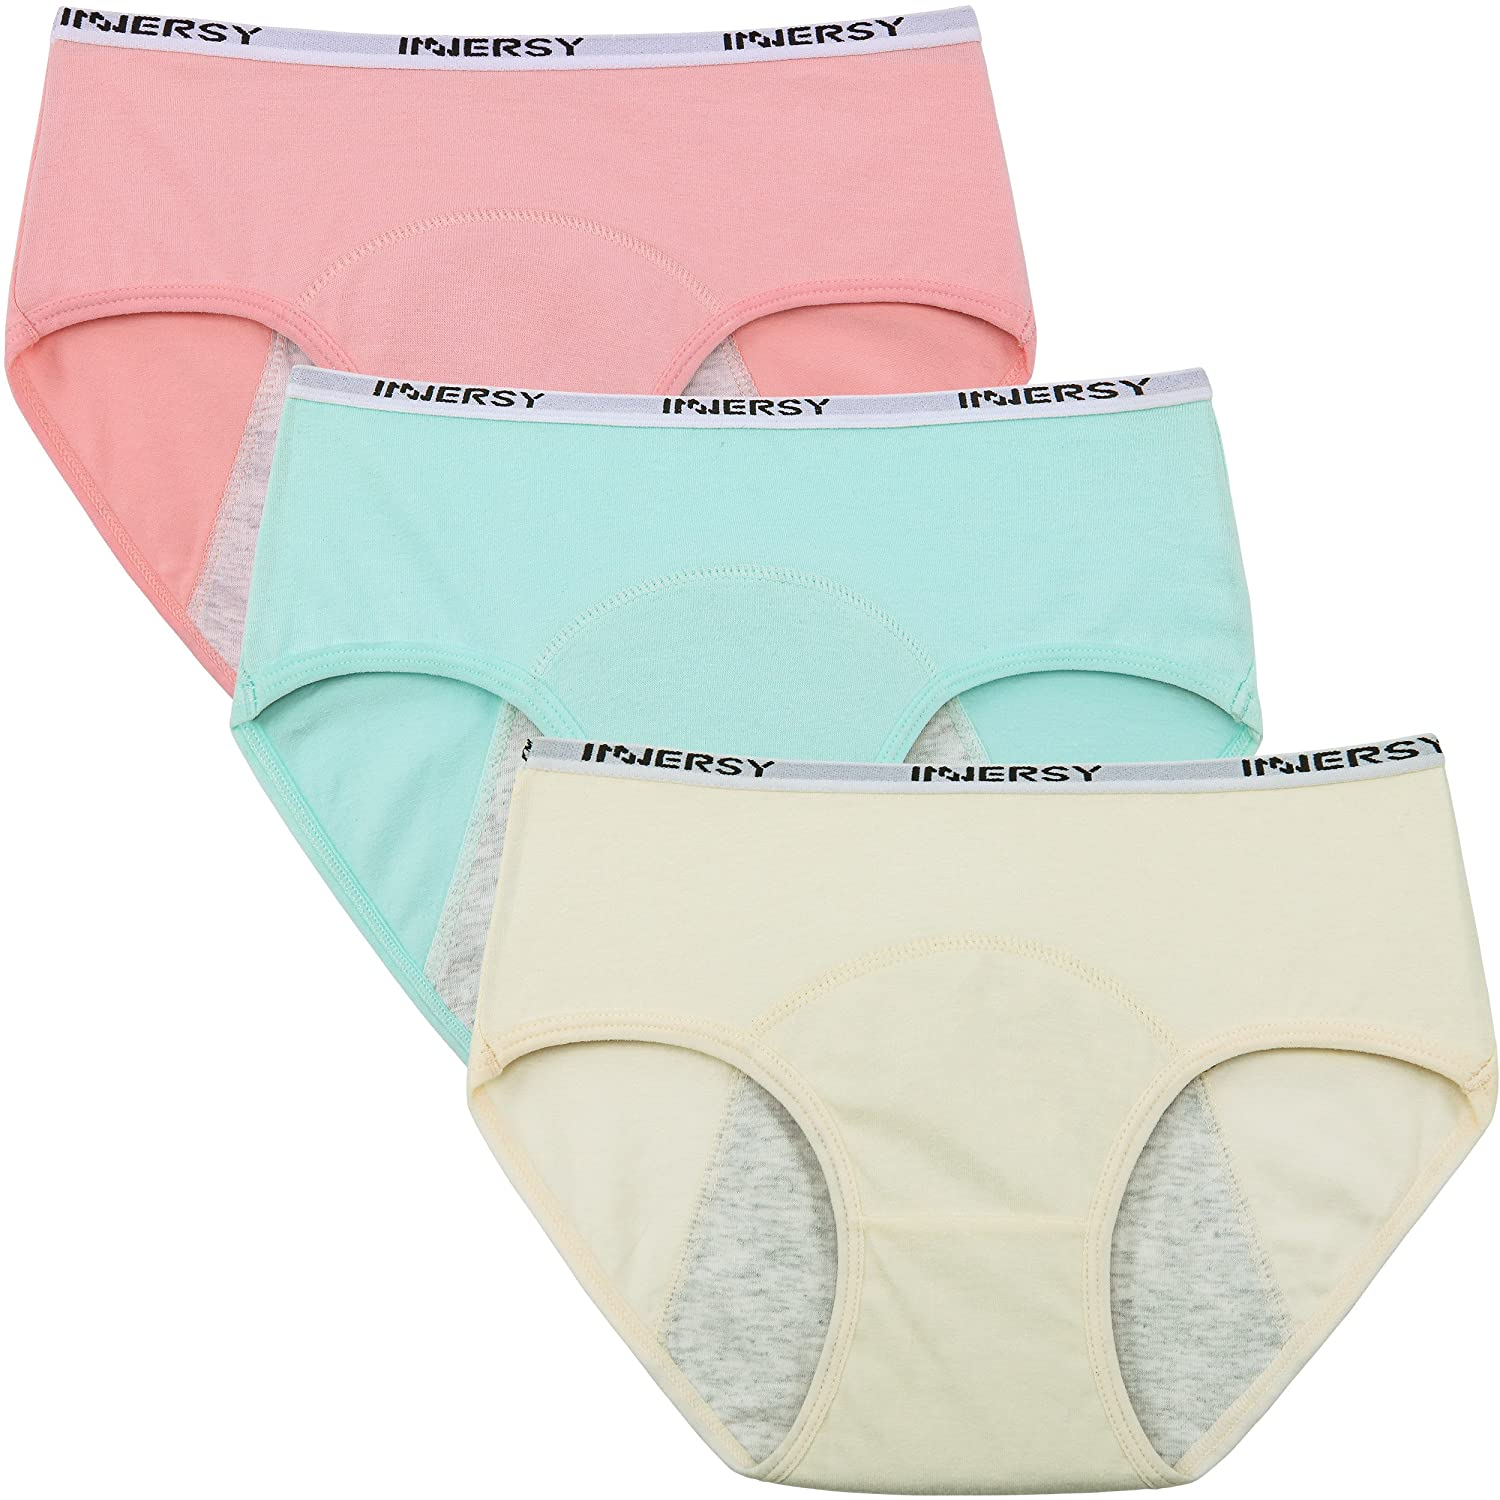 4 ladies ex store Brazilian briefs for just £5.00